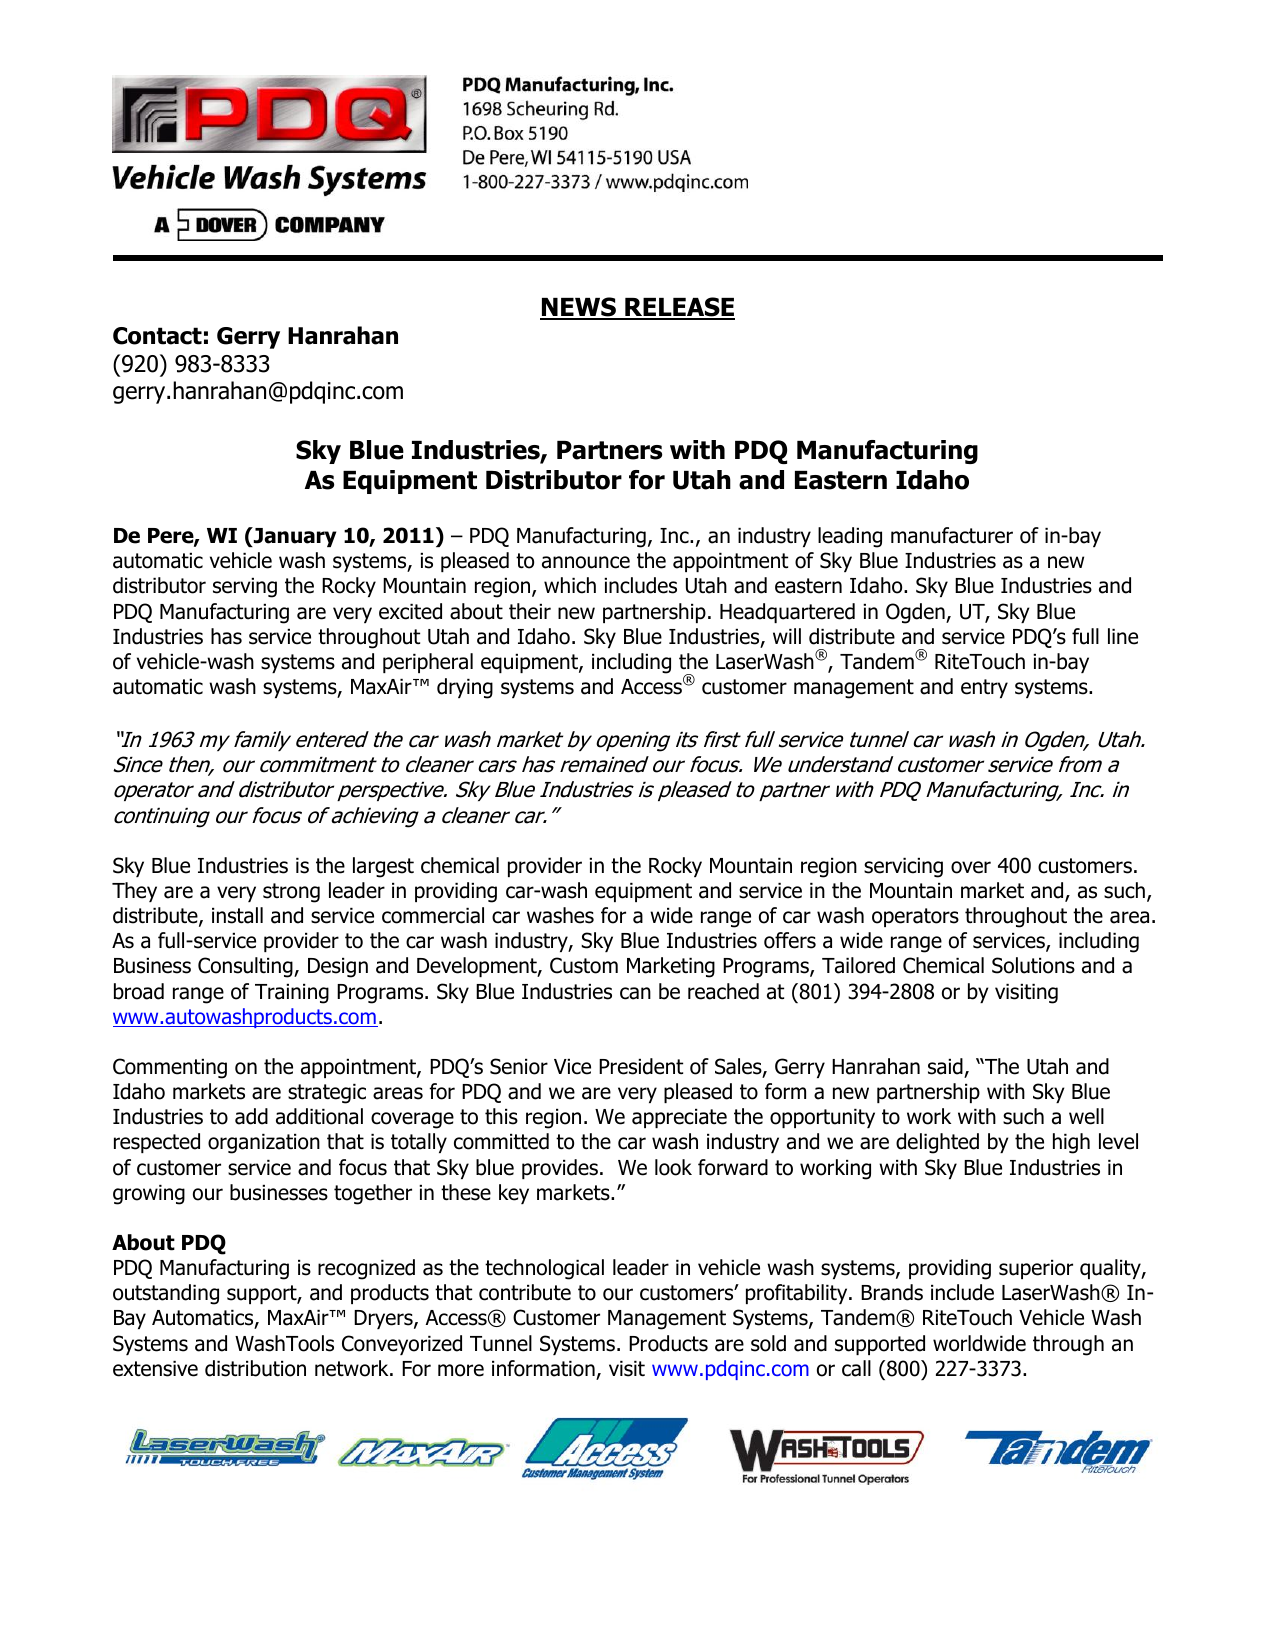 Sky Blue Industries, Partners with PDQ Manufacturing